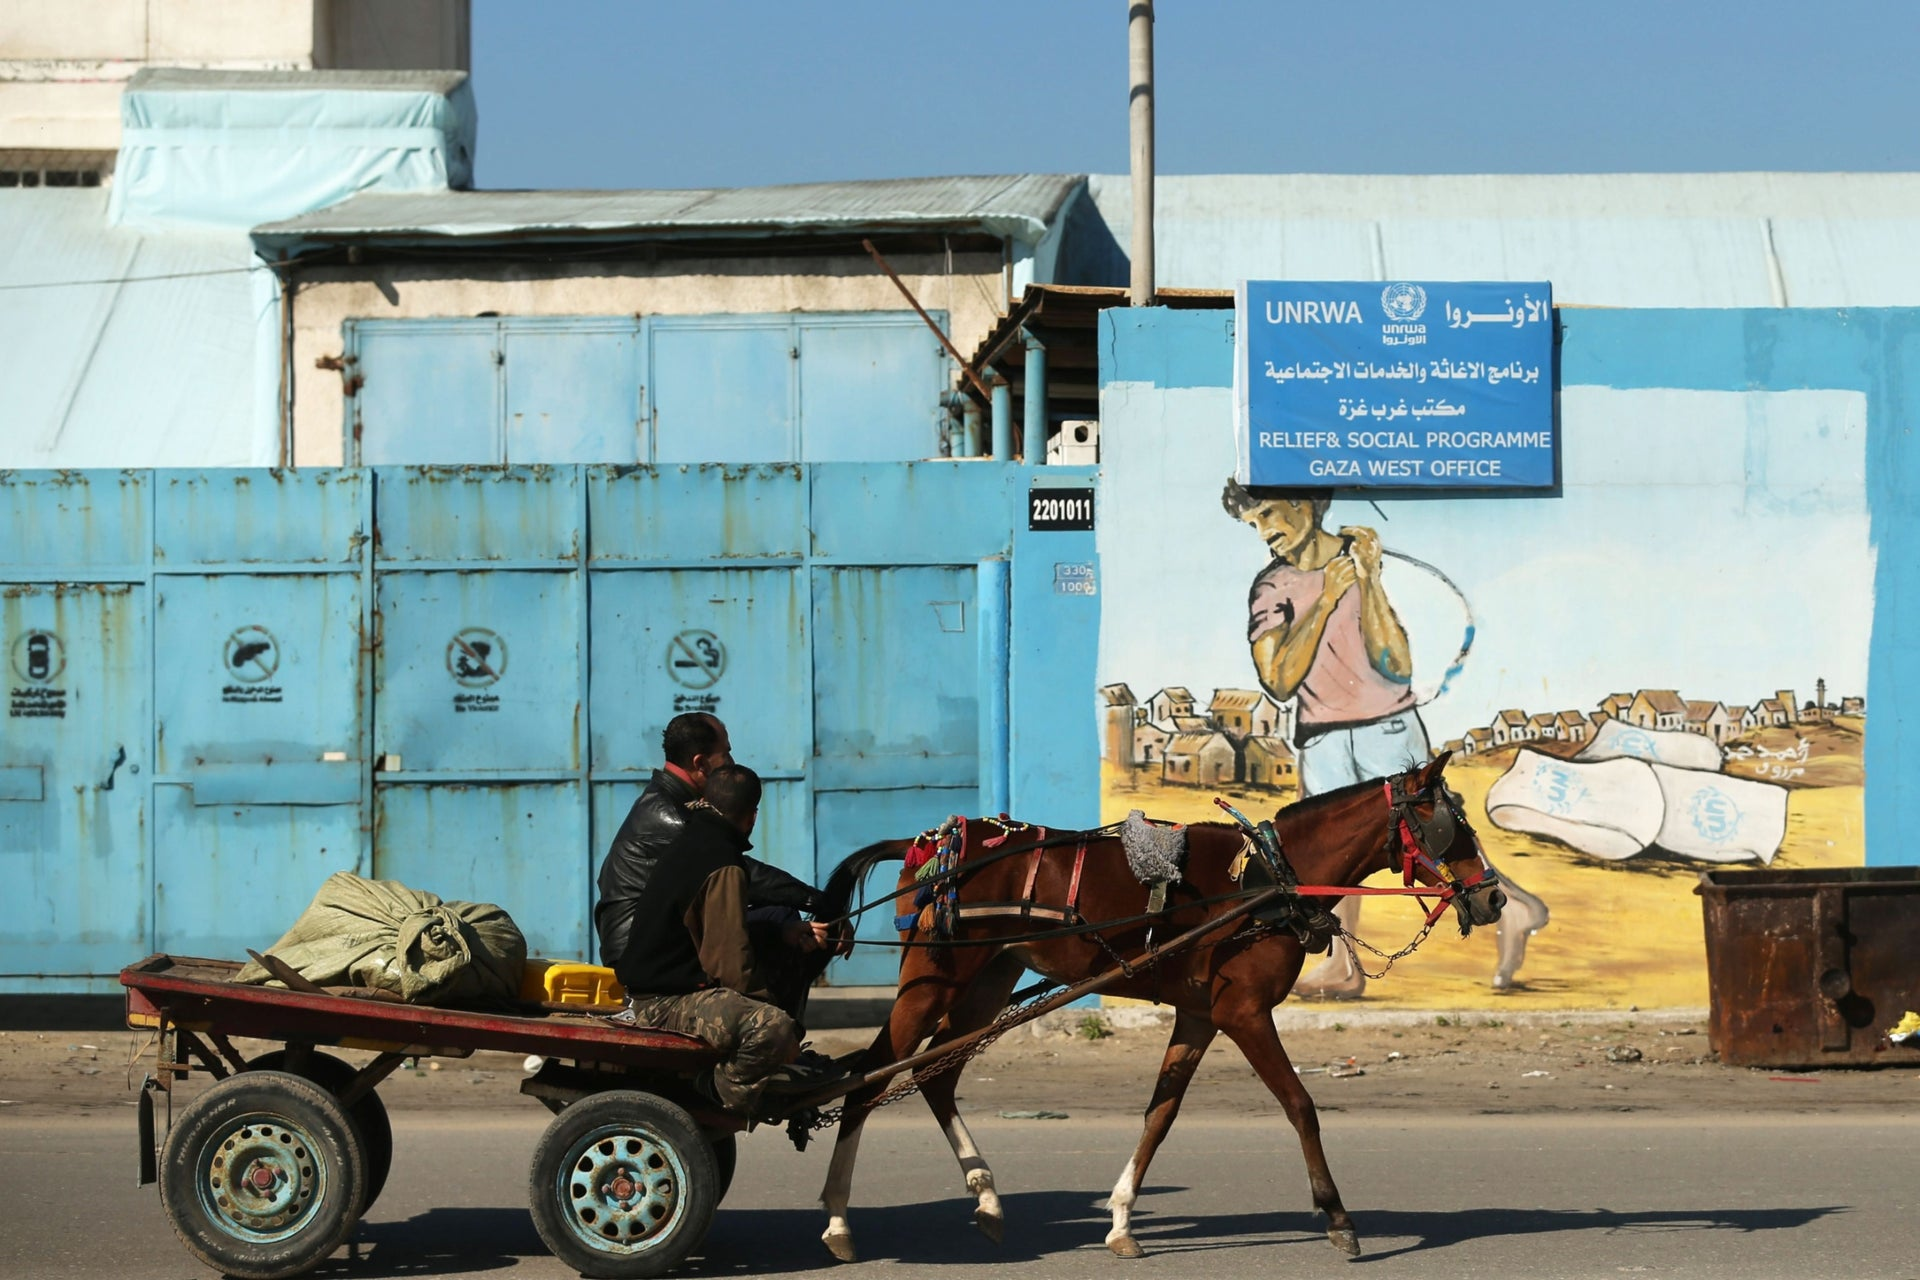 A Palestinian man rides his horse past the UNRWA office in Gaza City on January 8, 2018.